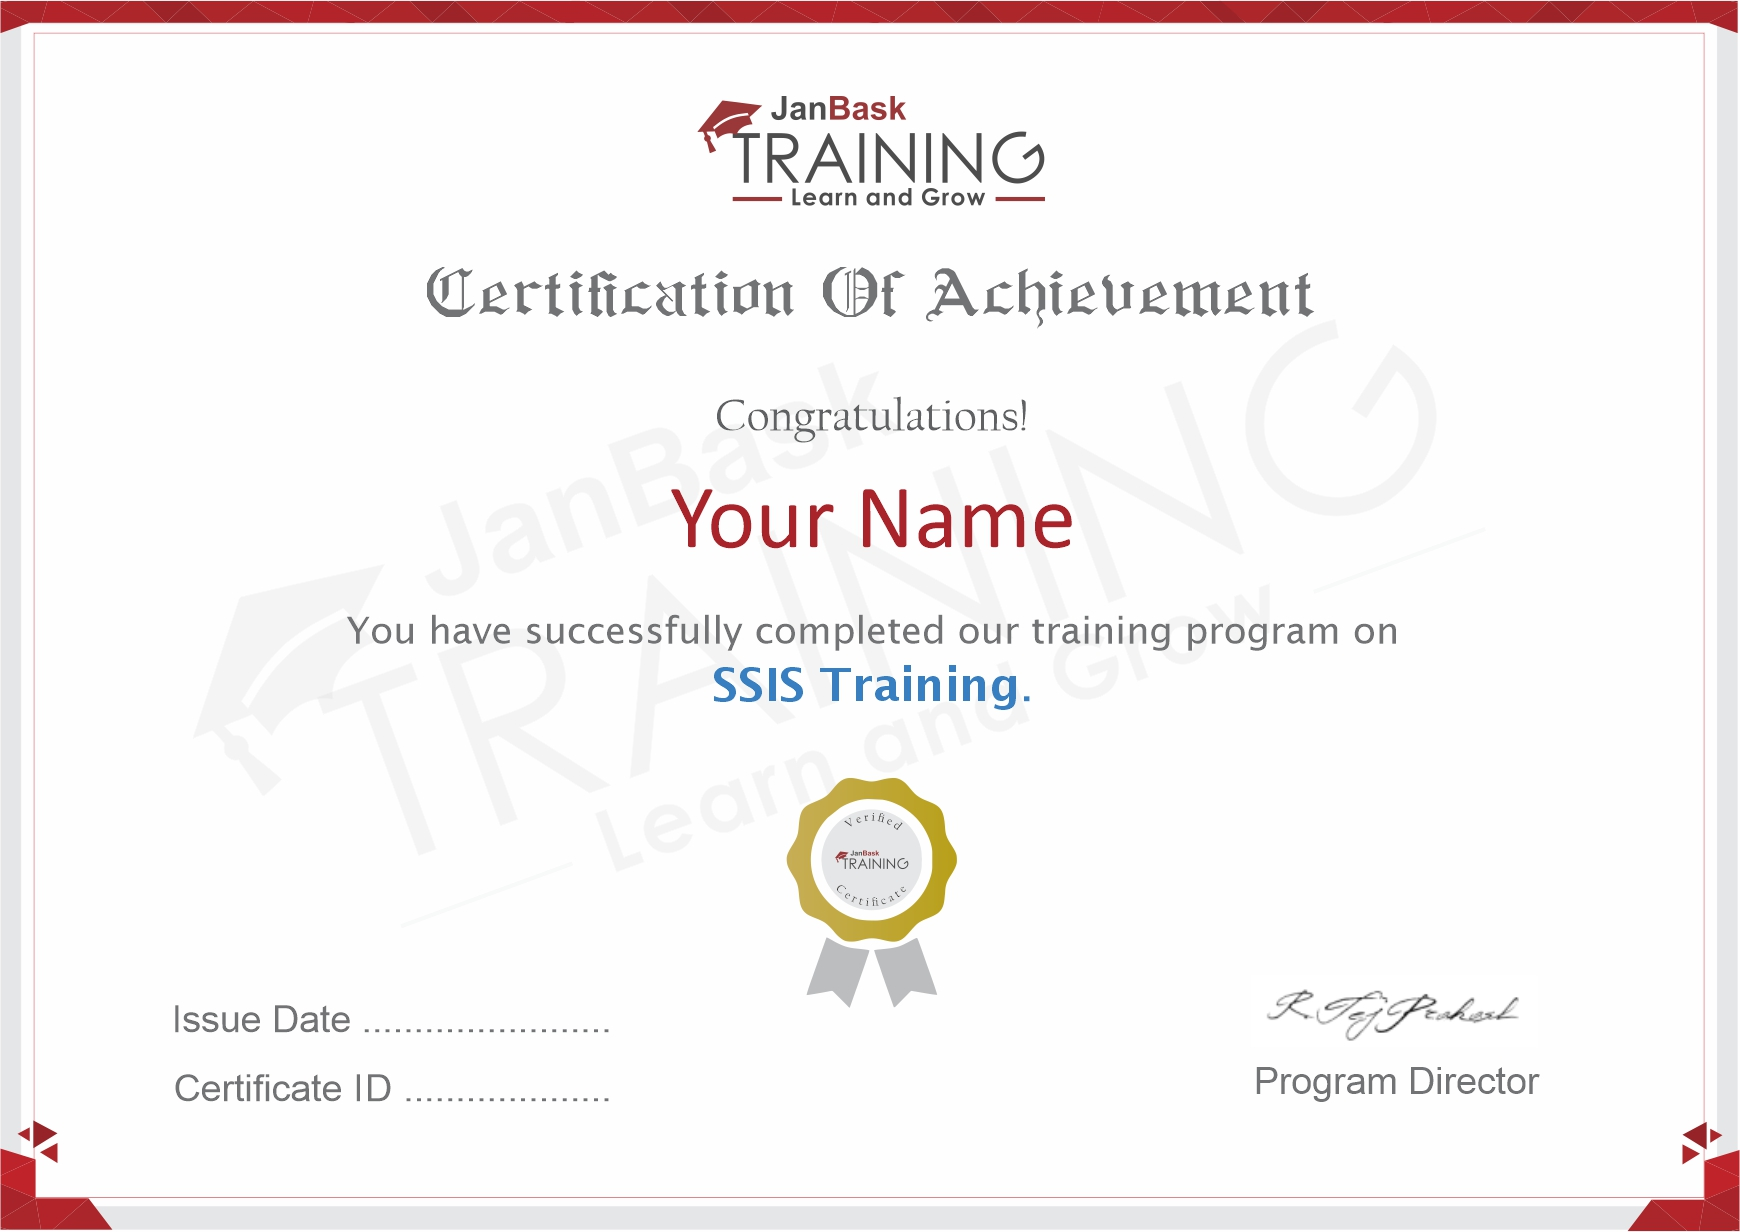 SQL (SSIS) Certificate